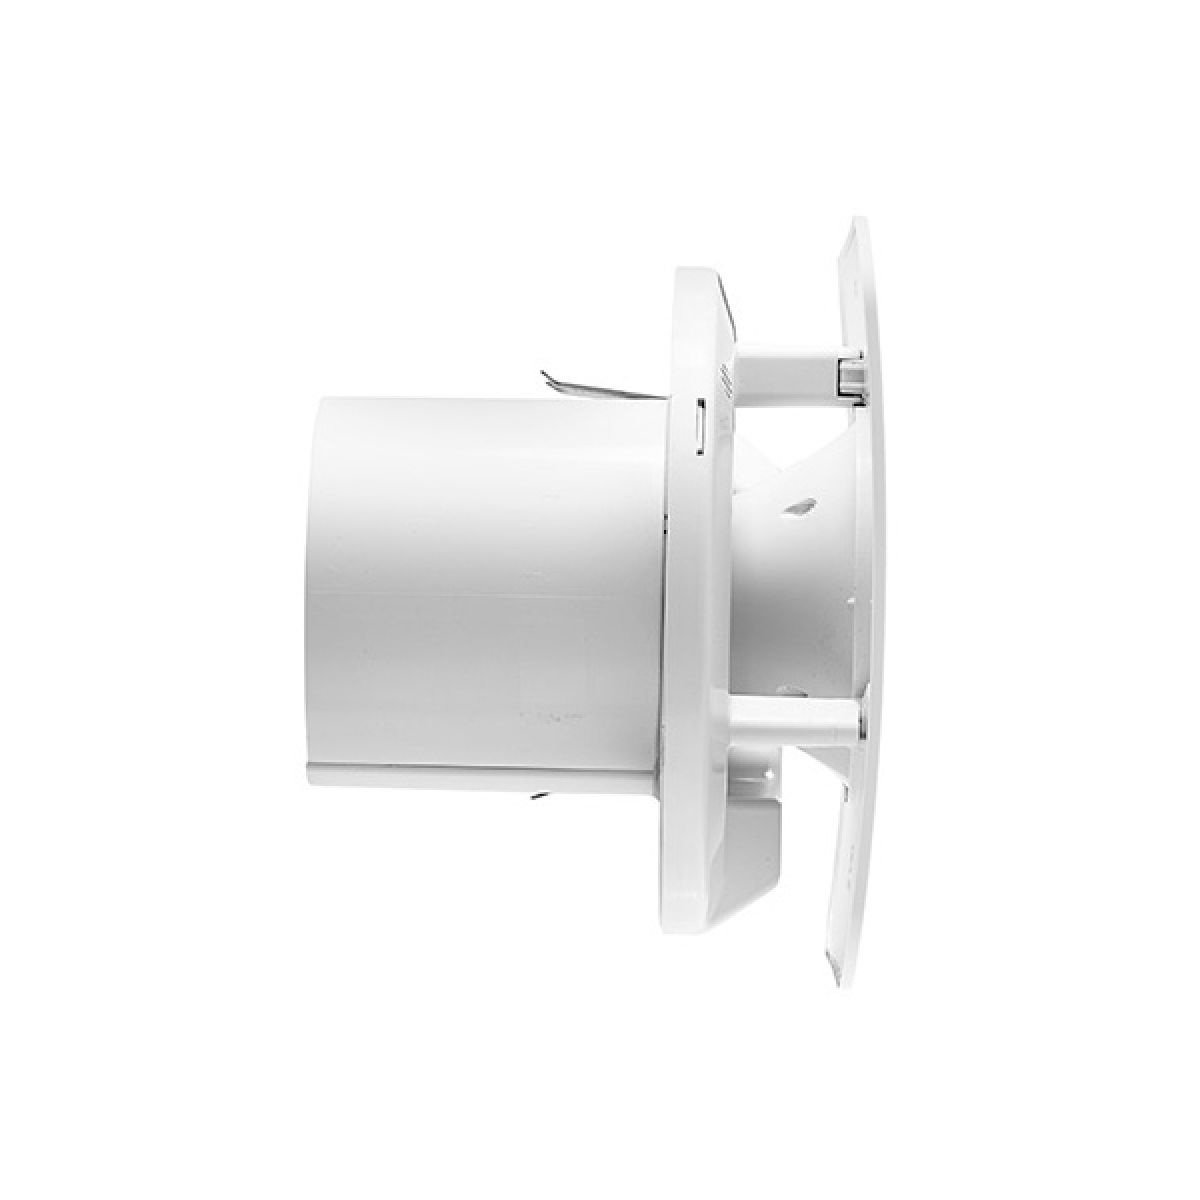 Xpelair Simply Silent Contour Square Bathroom Fan with Humidistat 100mm - Side